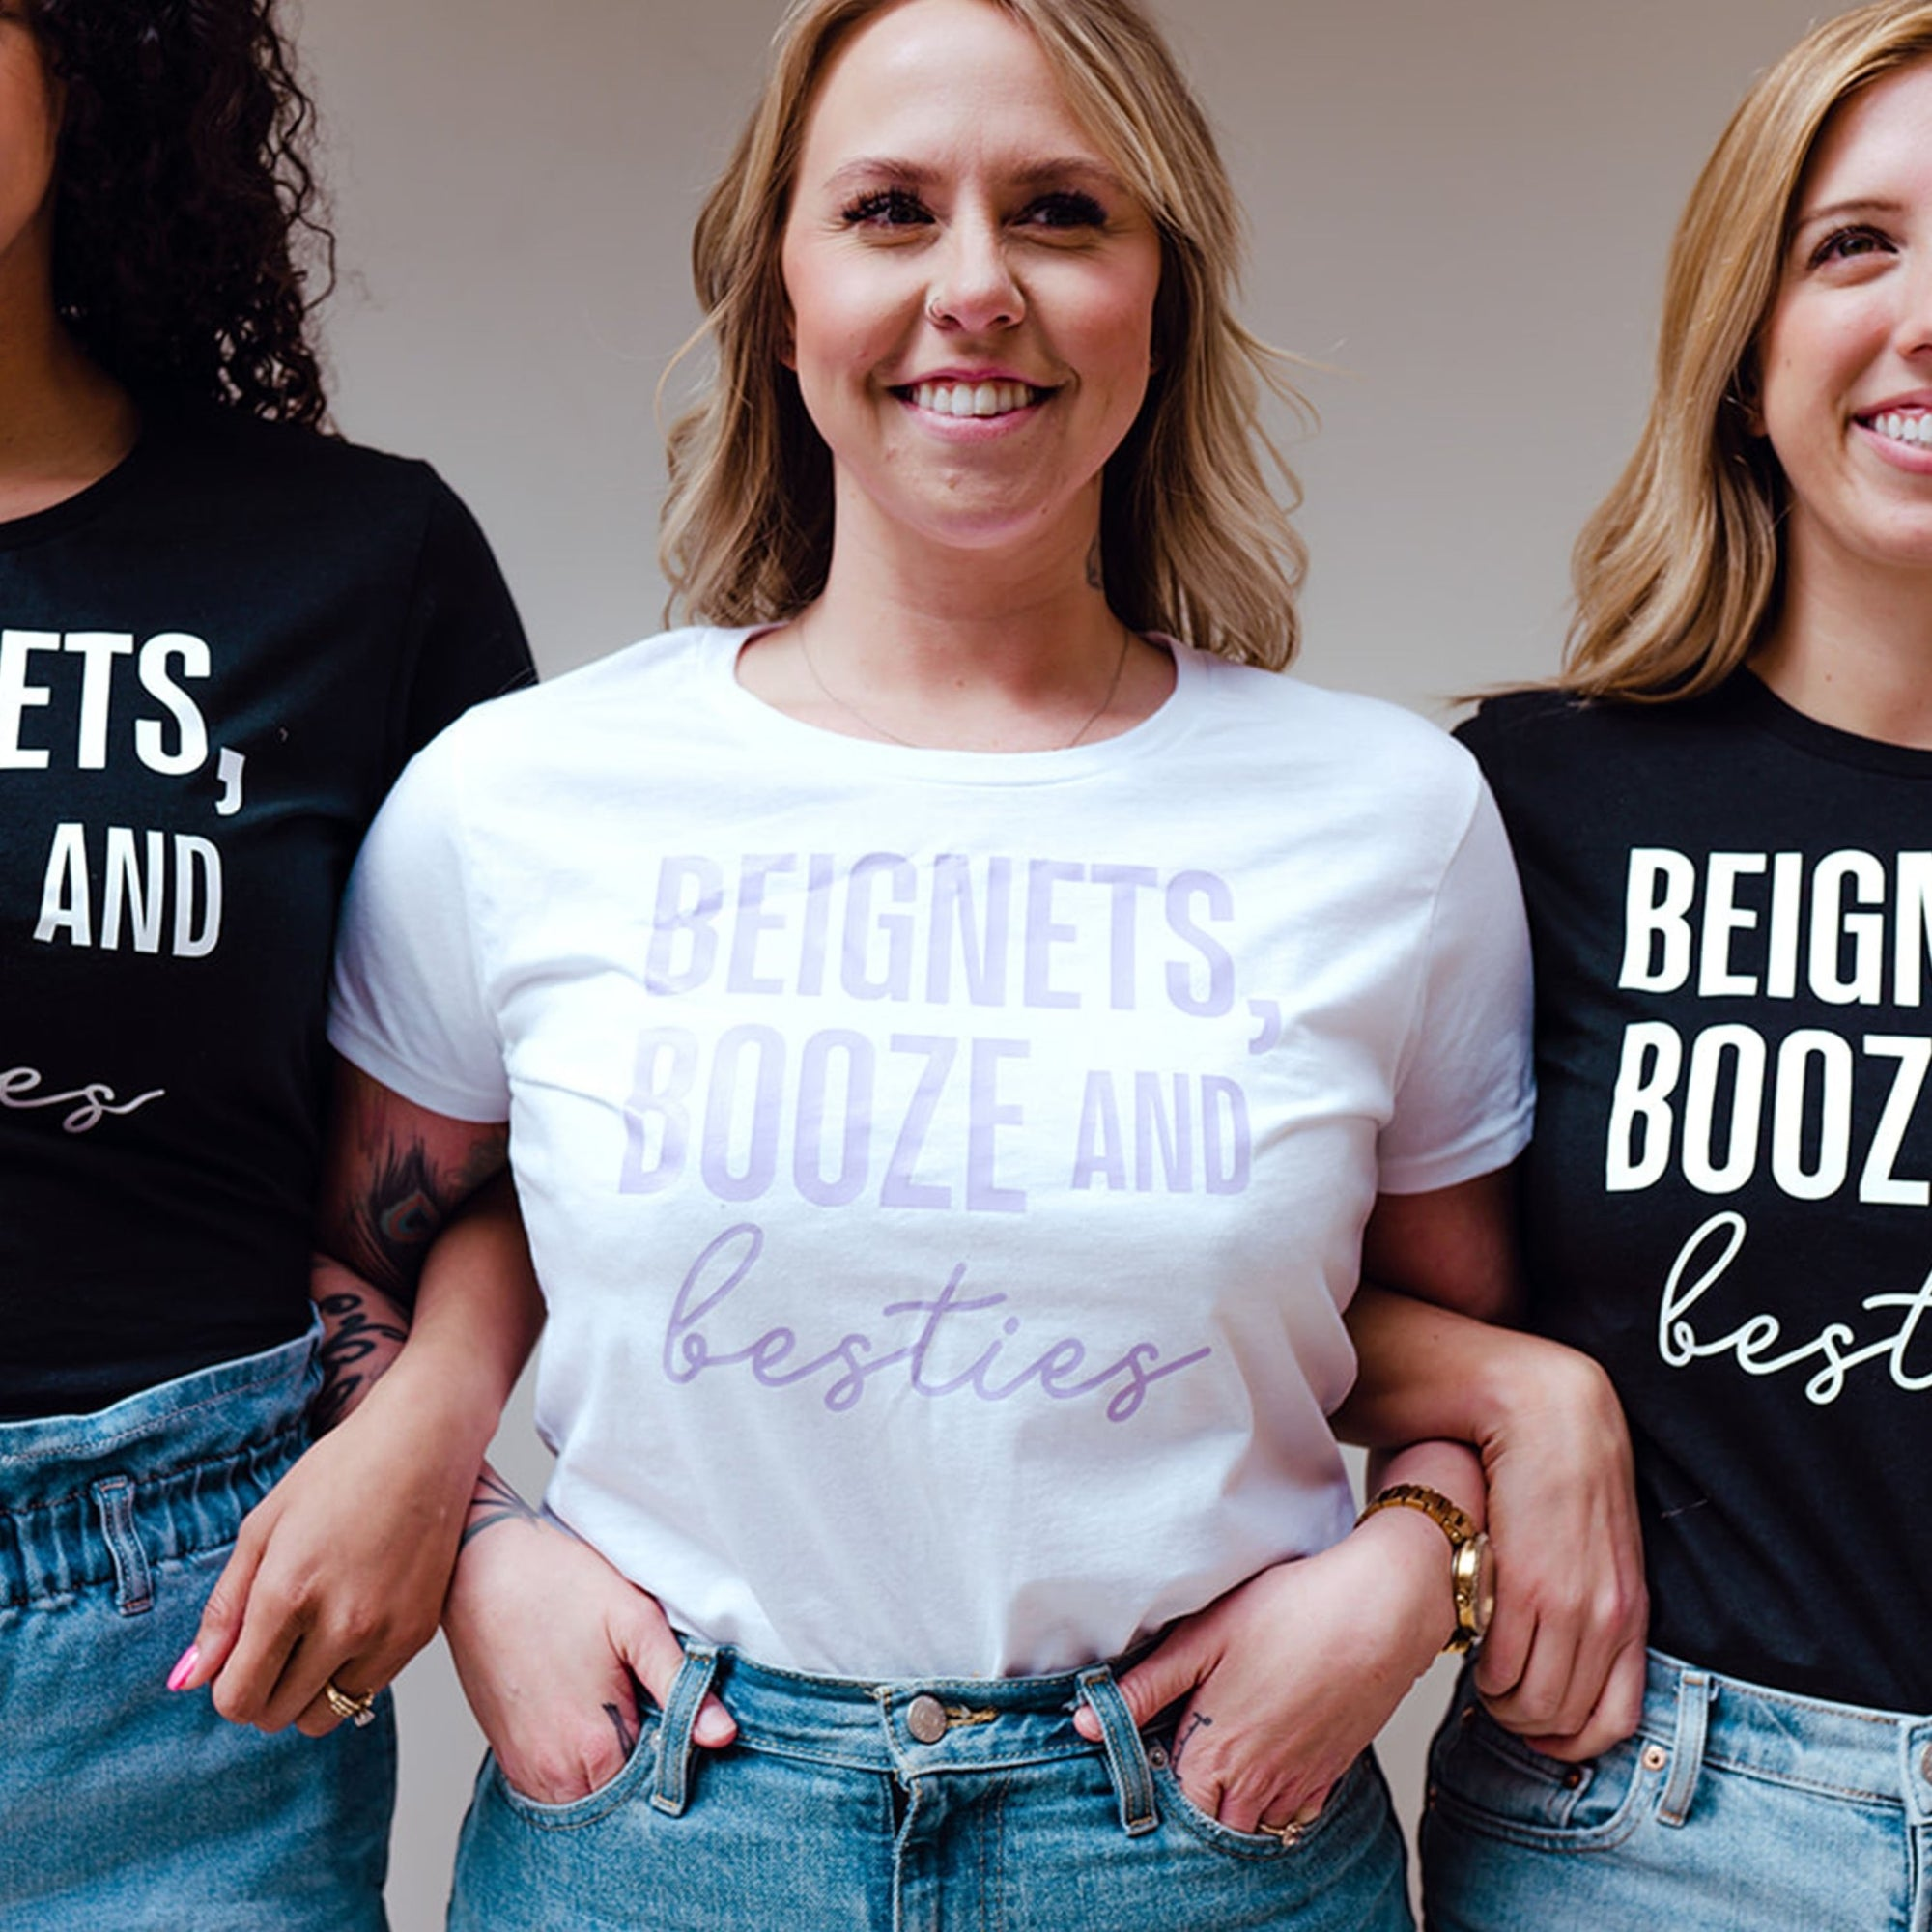 Beignets, Booze & Besties Shirt - Sprinkled With Pink #bachelorette #custom #gifts